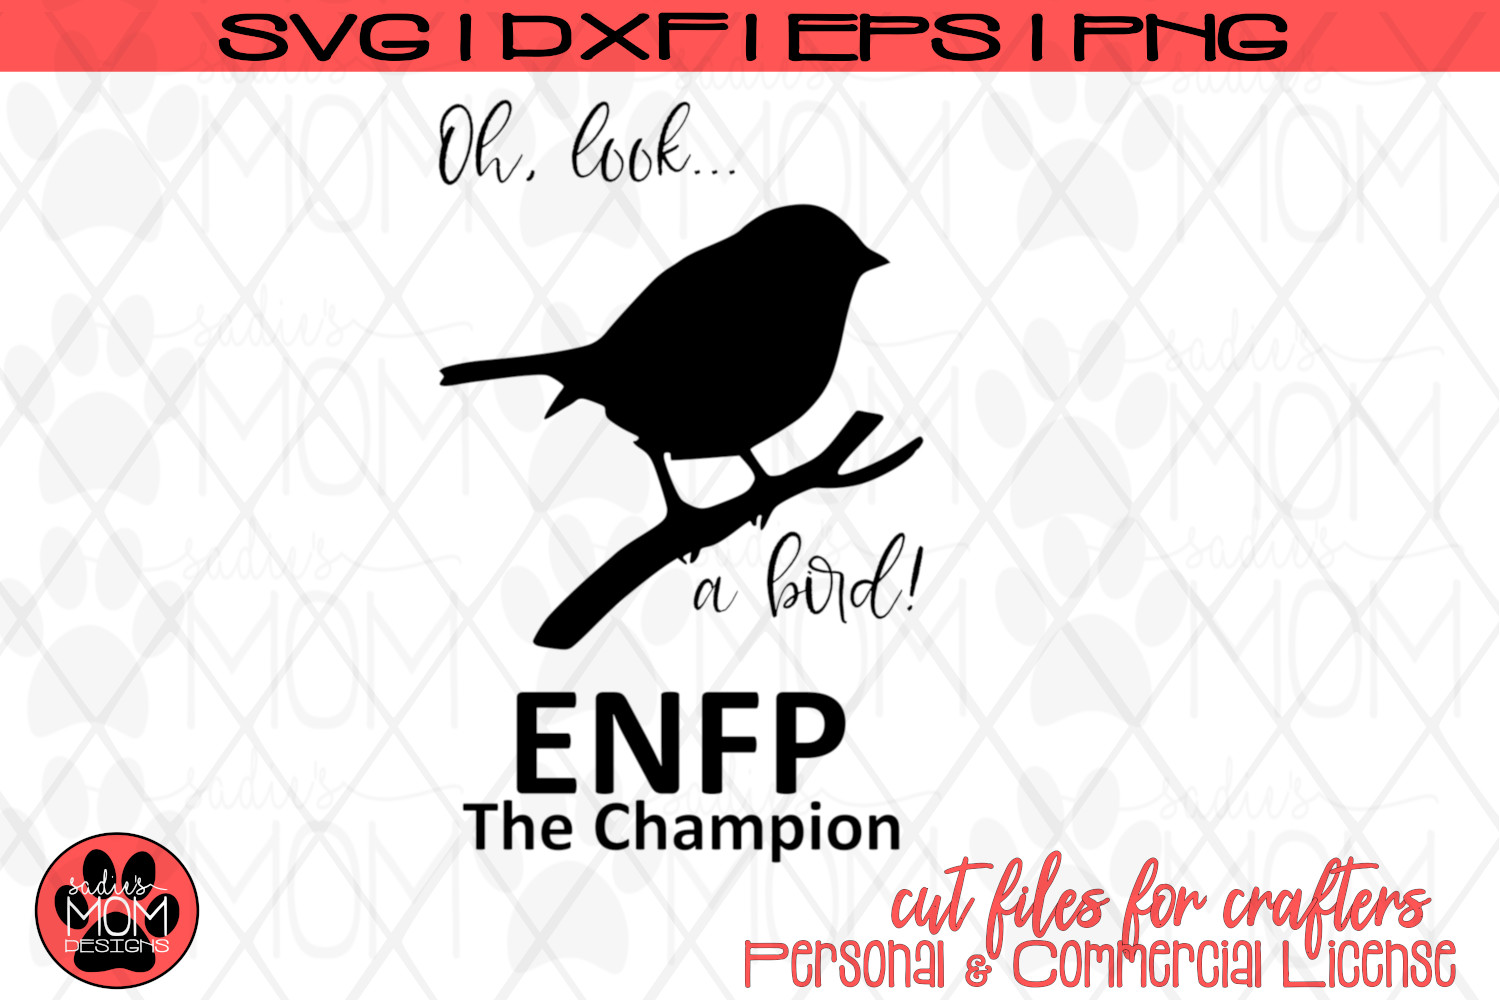 Oh Look A Bird - Myers Briggs - ENFP Champion - SVG Cut File example image 2